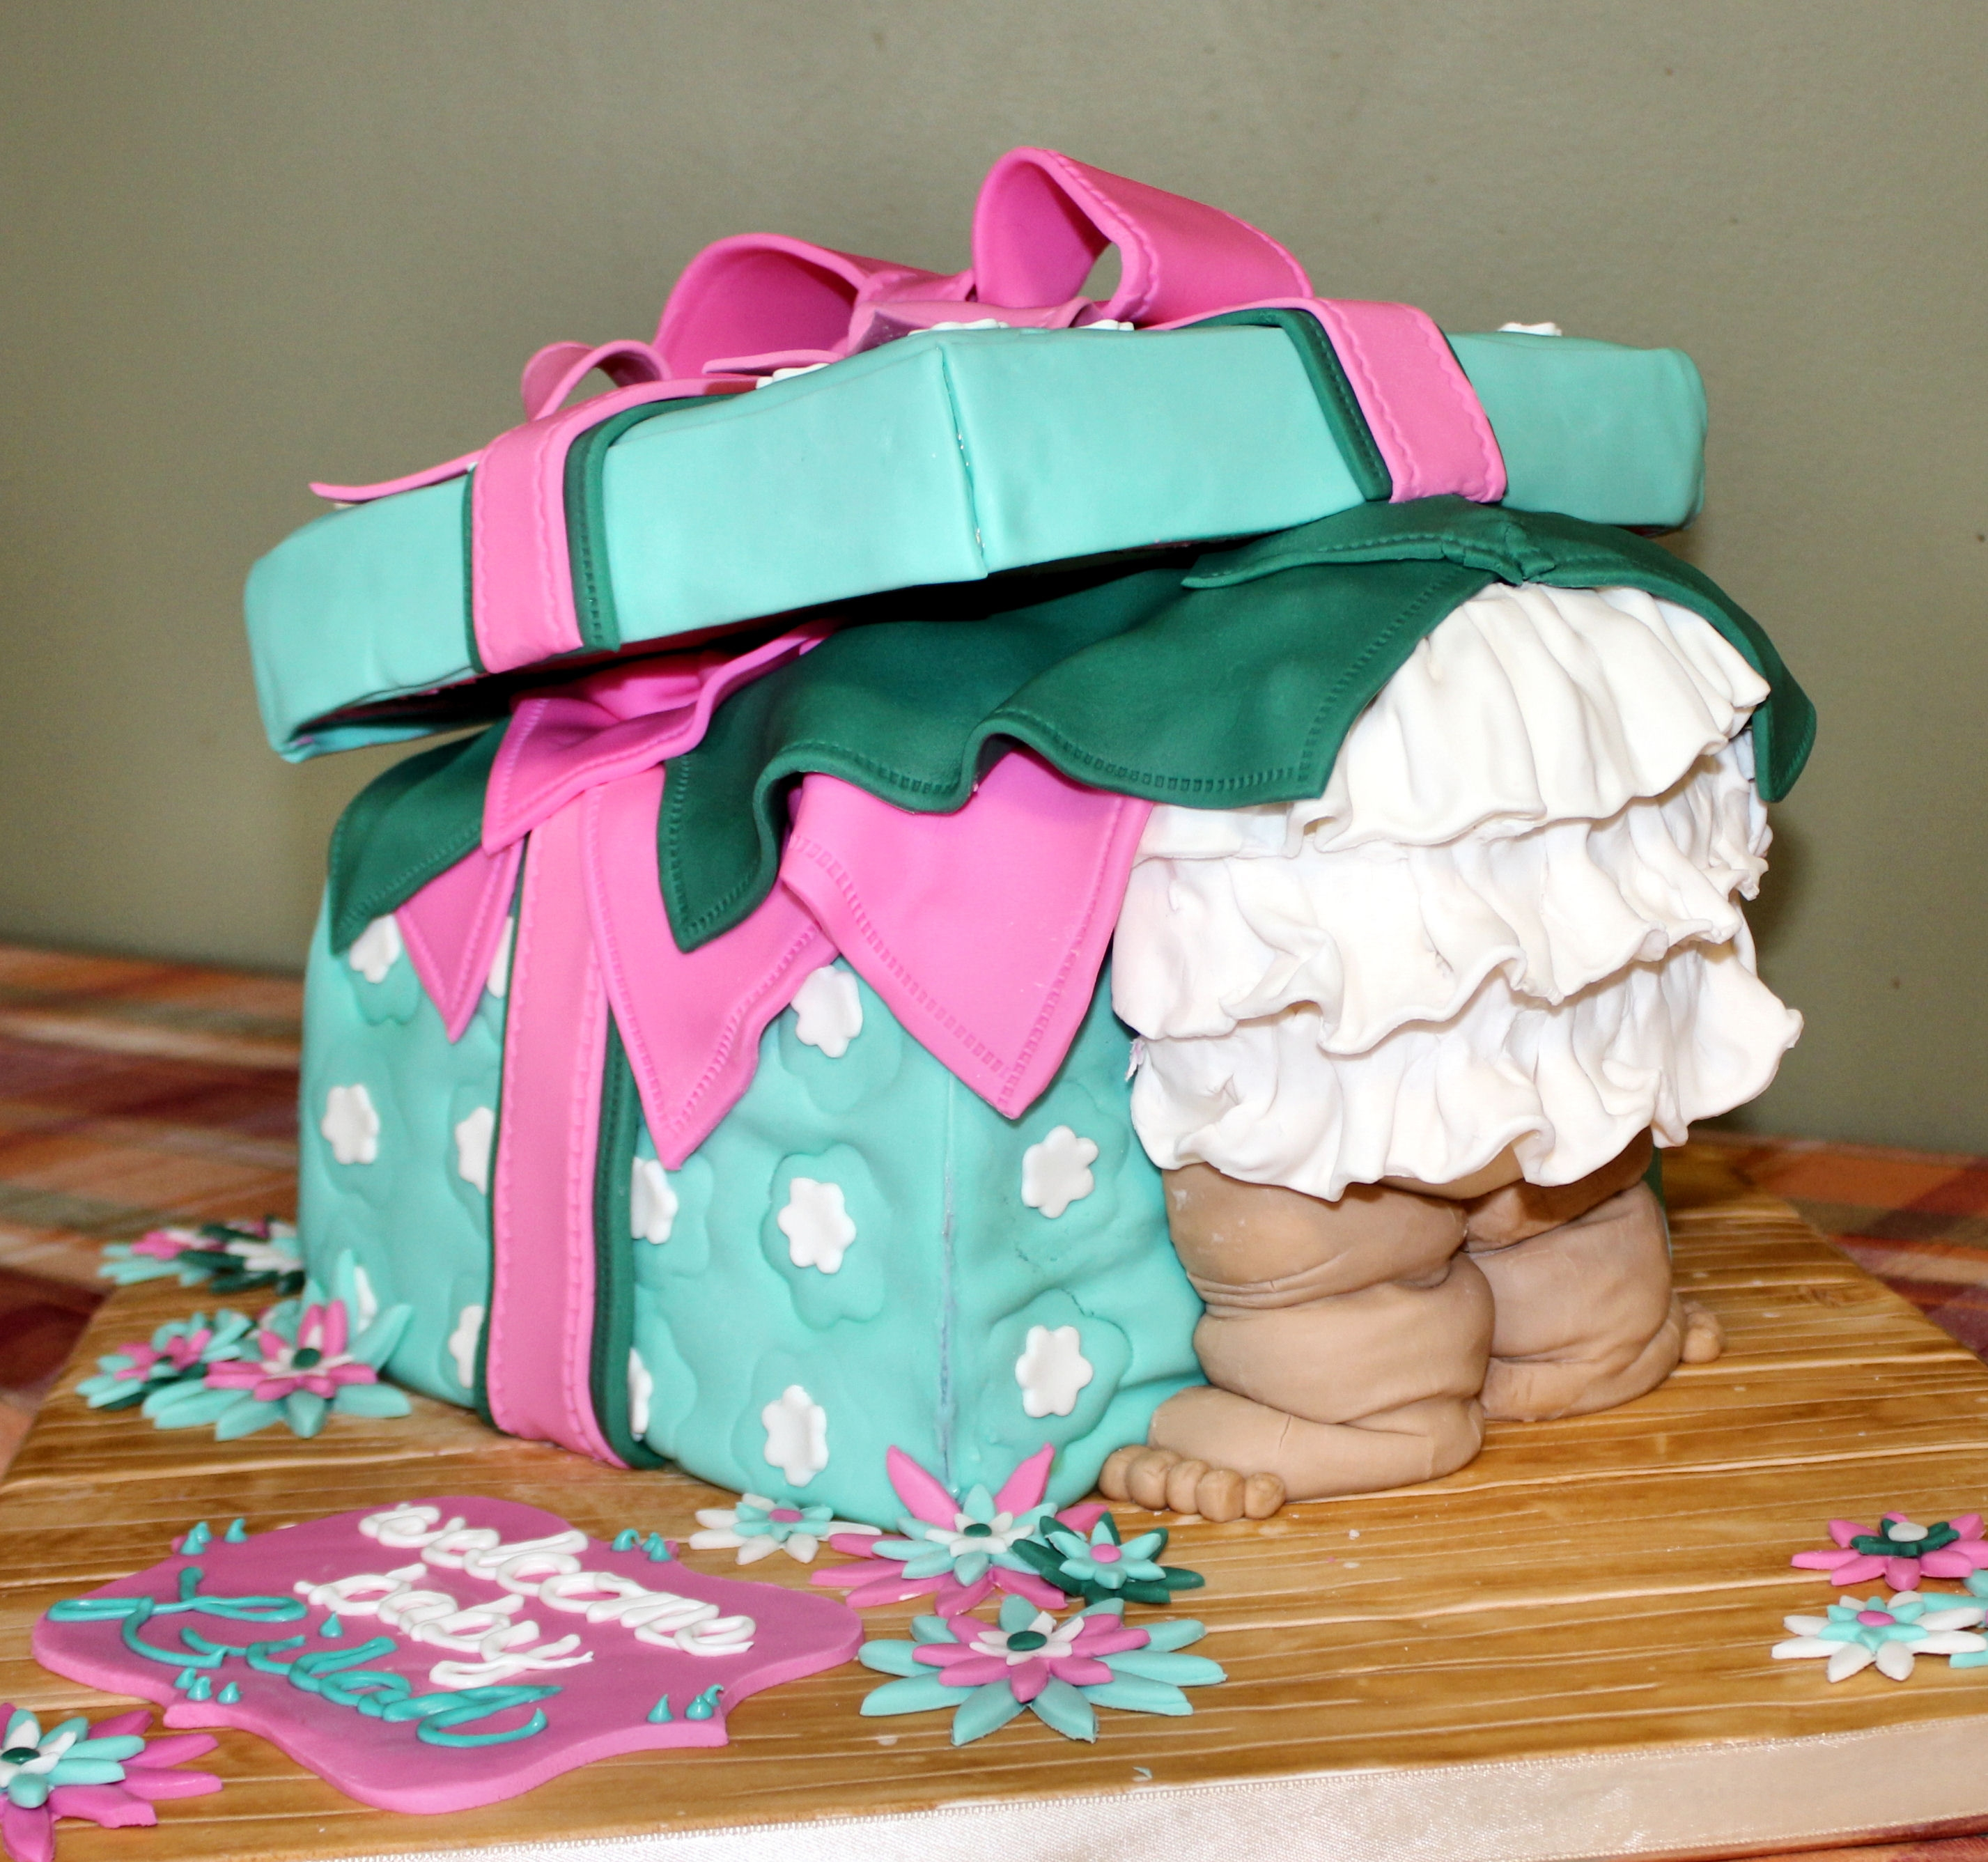 Fondant Covered 3 Layer Cake, Rice Kripies Treats Baby Bottom And Box Lid,  With Fondant Baby Legs And Accents.